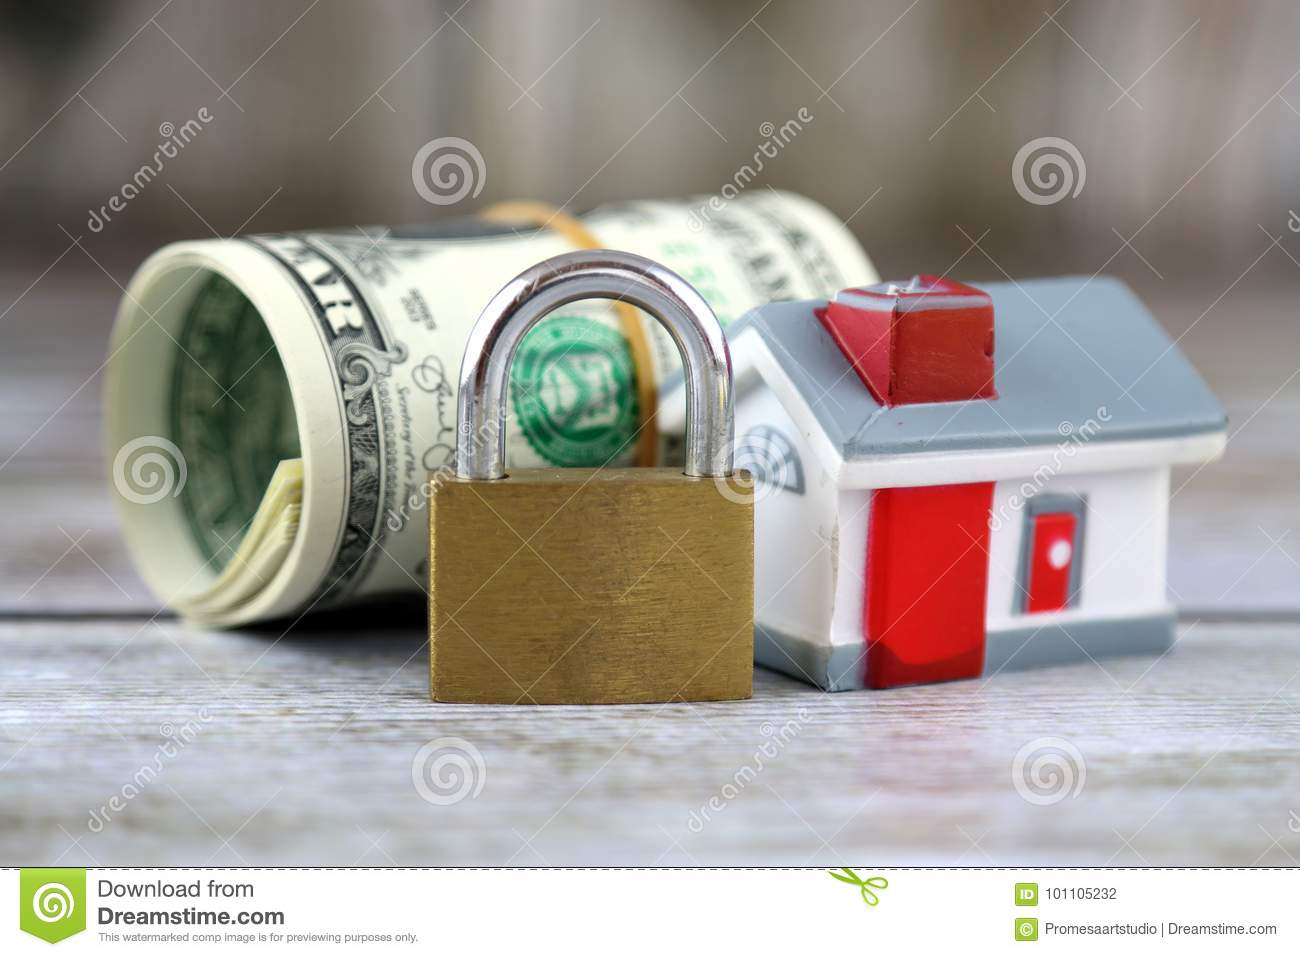 House, padlock and dollars. Conceptual image for investors in real estate and dollars. Security of money and real estate